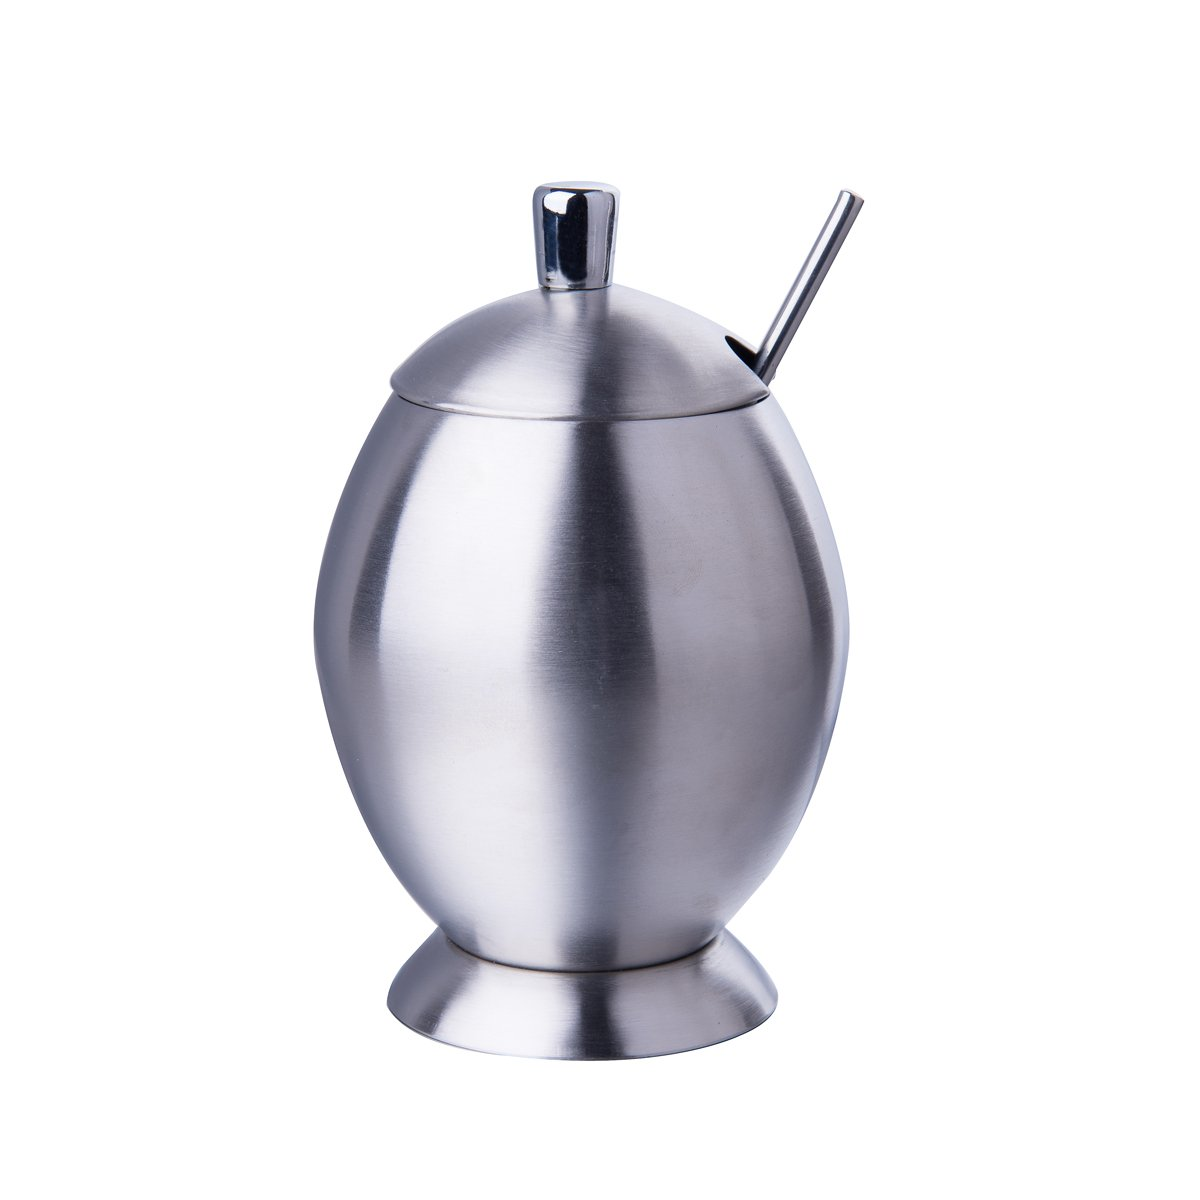 IMEEA Sugar Bowl with Lid and Sugar Spoon for Home Kitchen SUS304 Brushed Stainless Steel, Egg Shape, 9.8 Ounces(290 Milliliter)